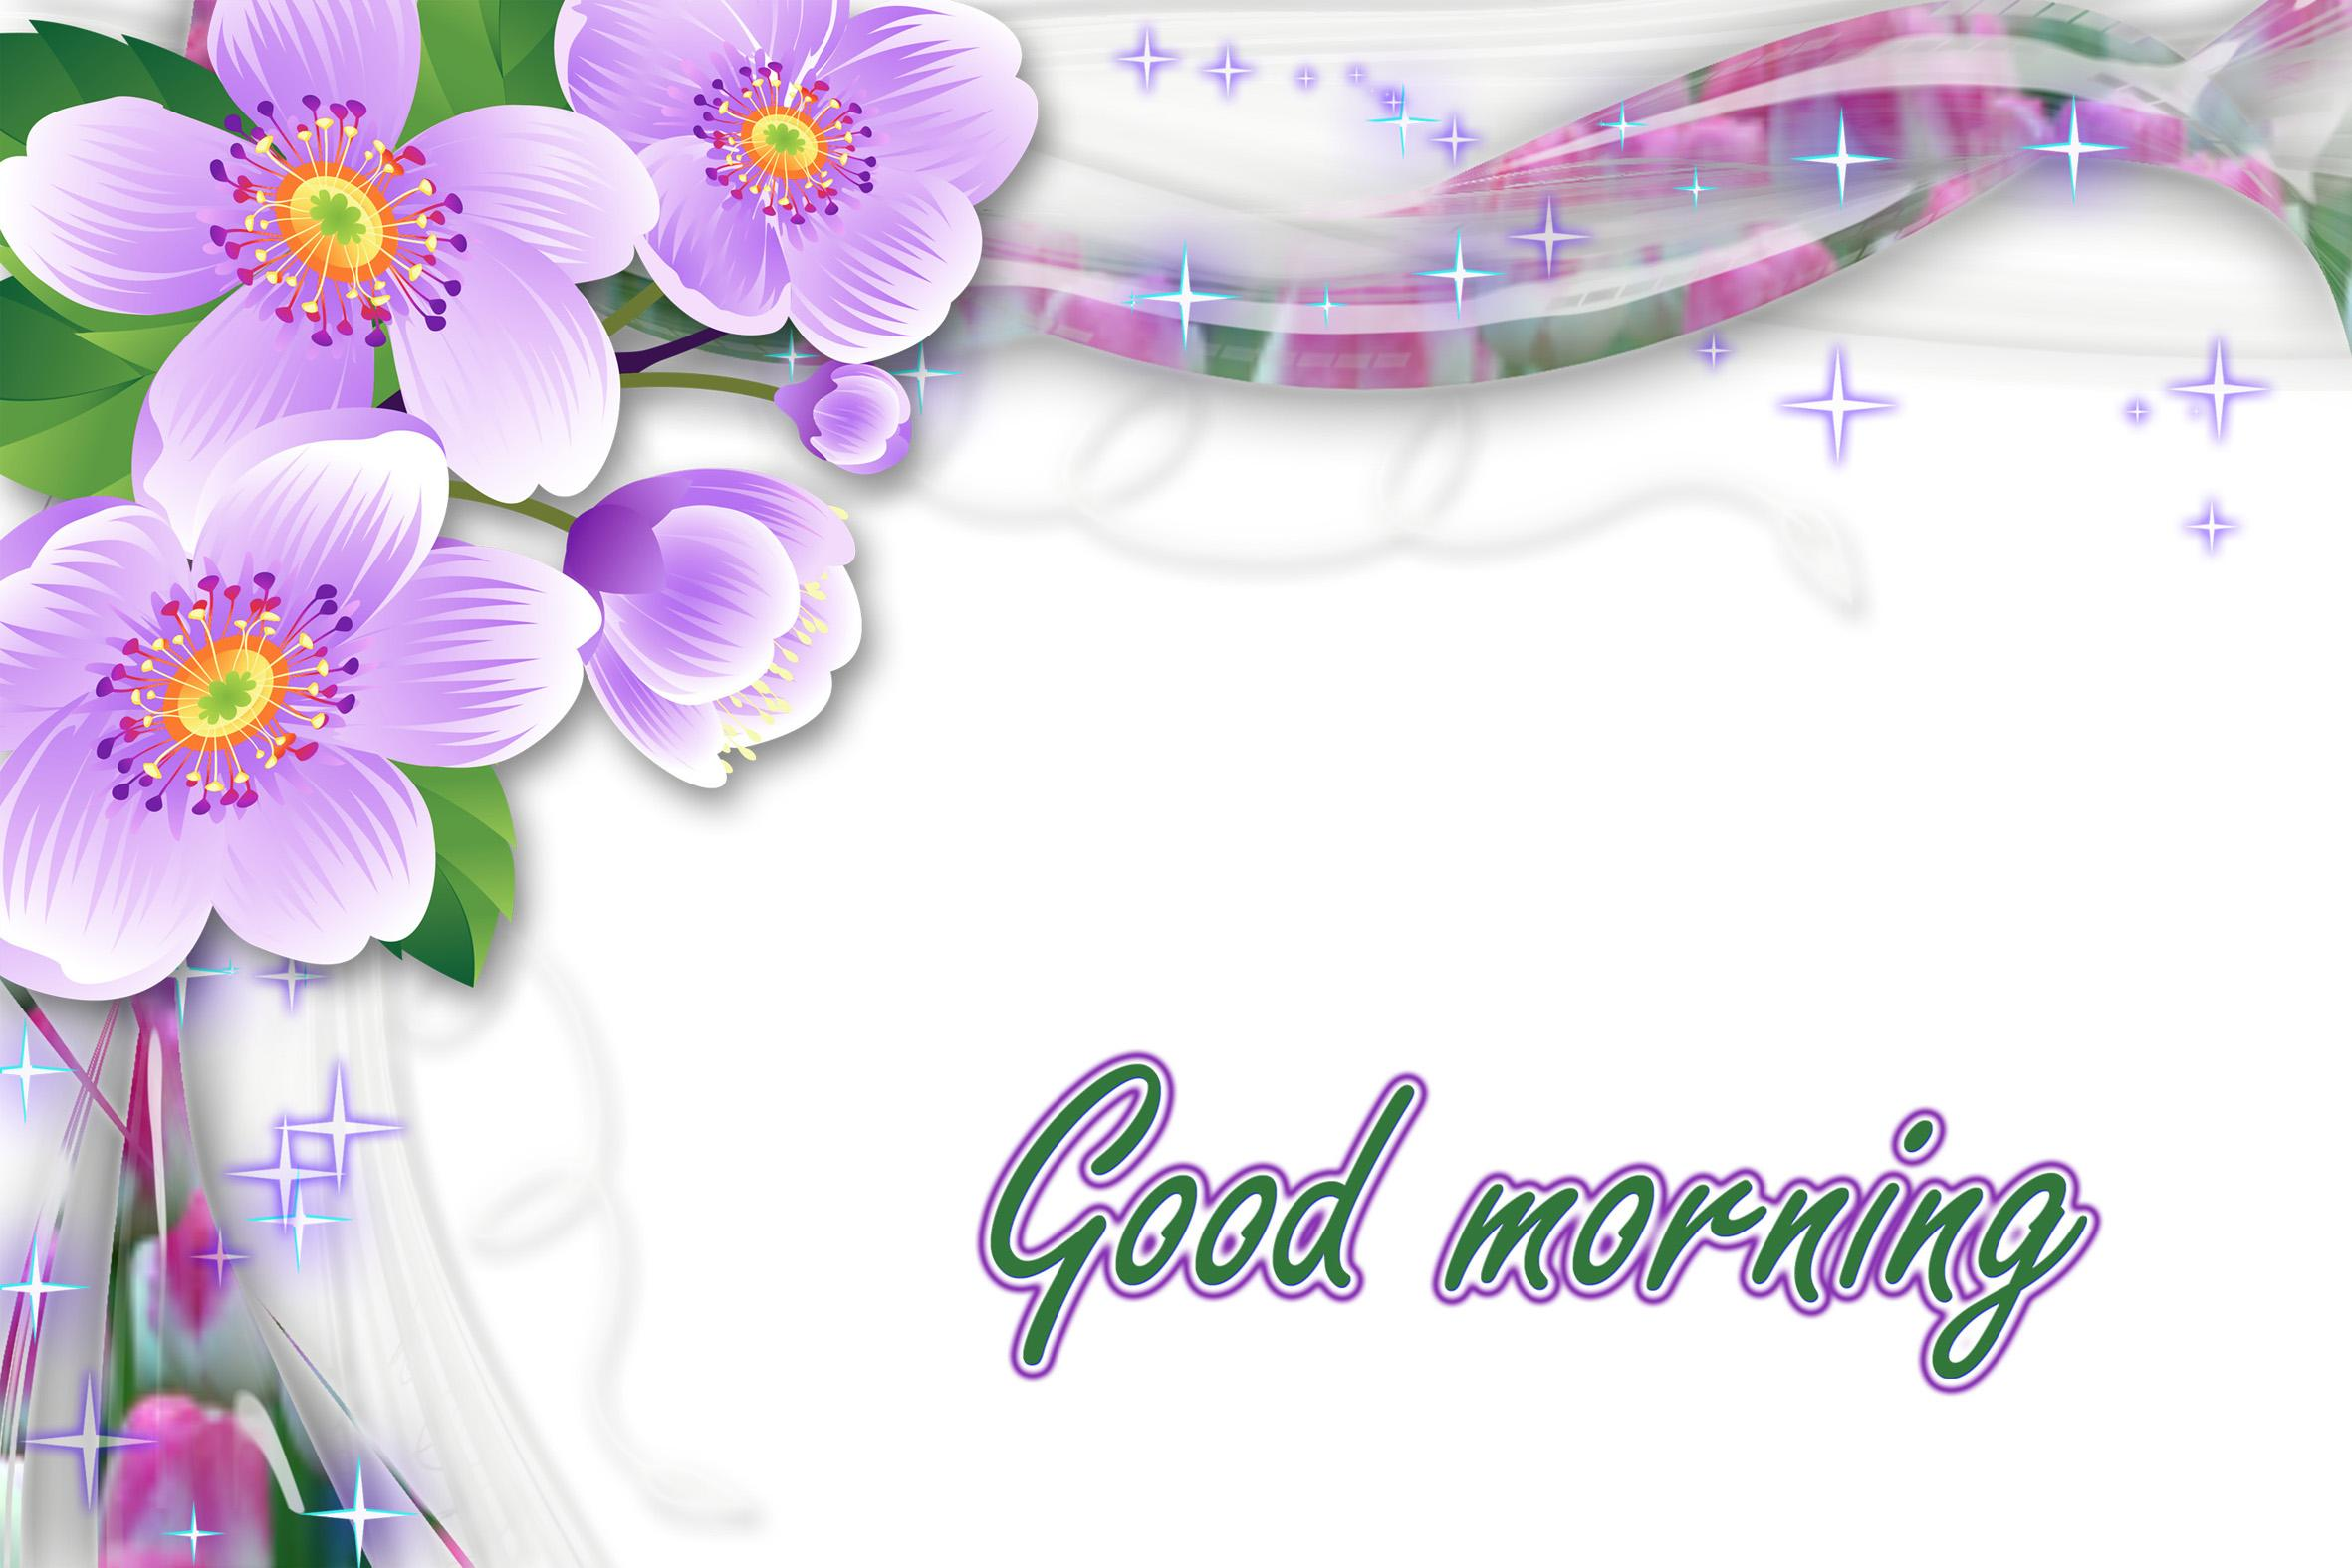 Good Morning Pictures & wallpapers